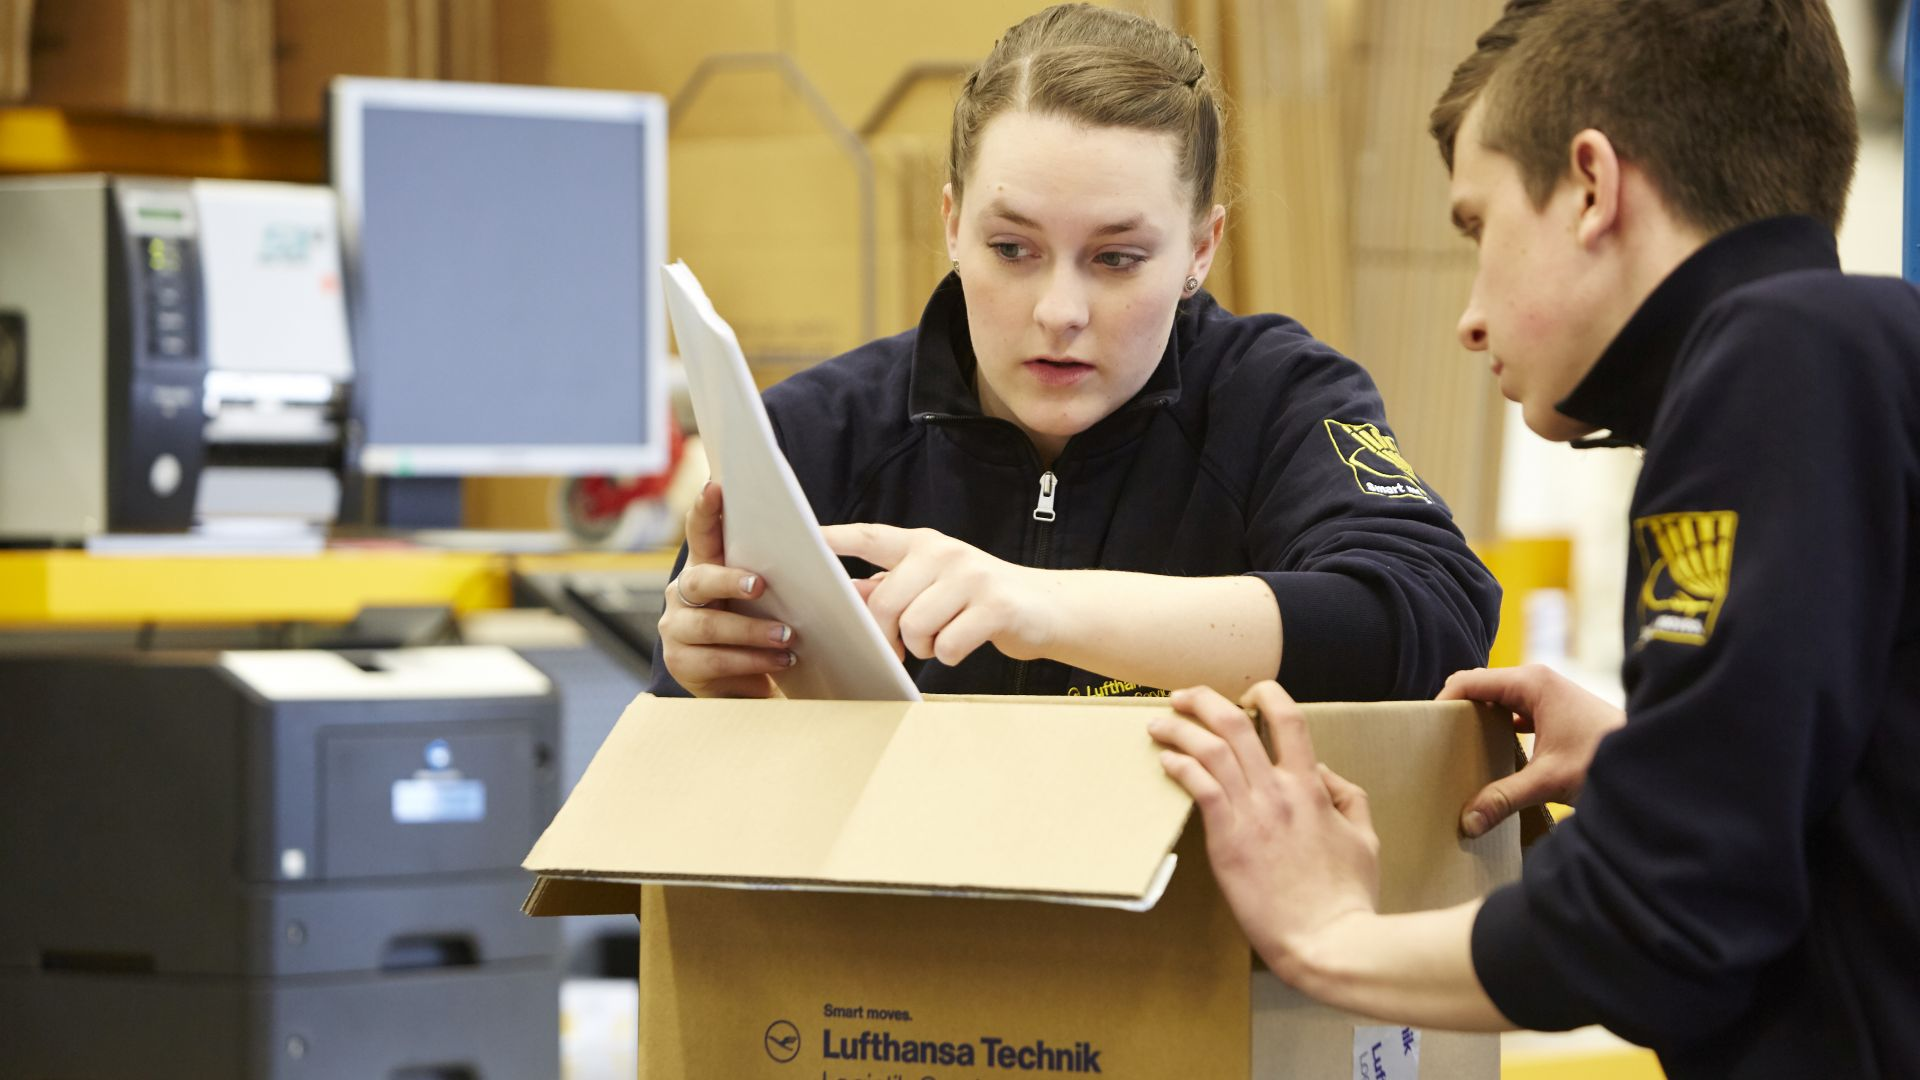 Lufthansa Technik intensifies its training efforts substantially